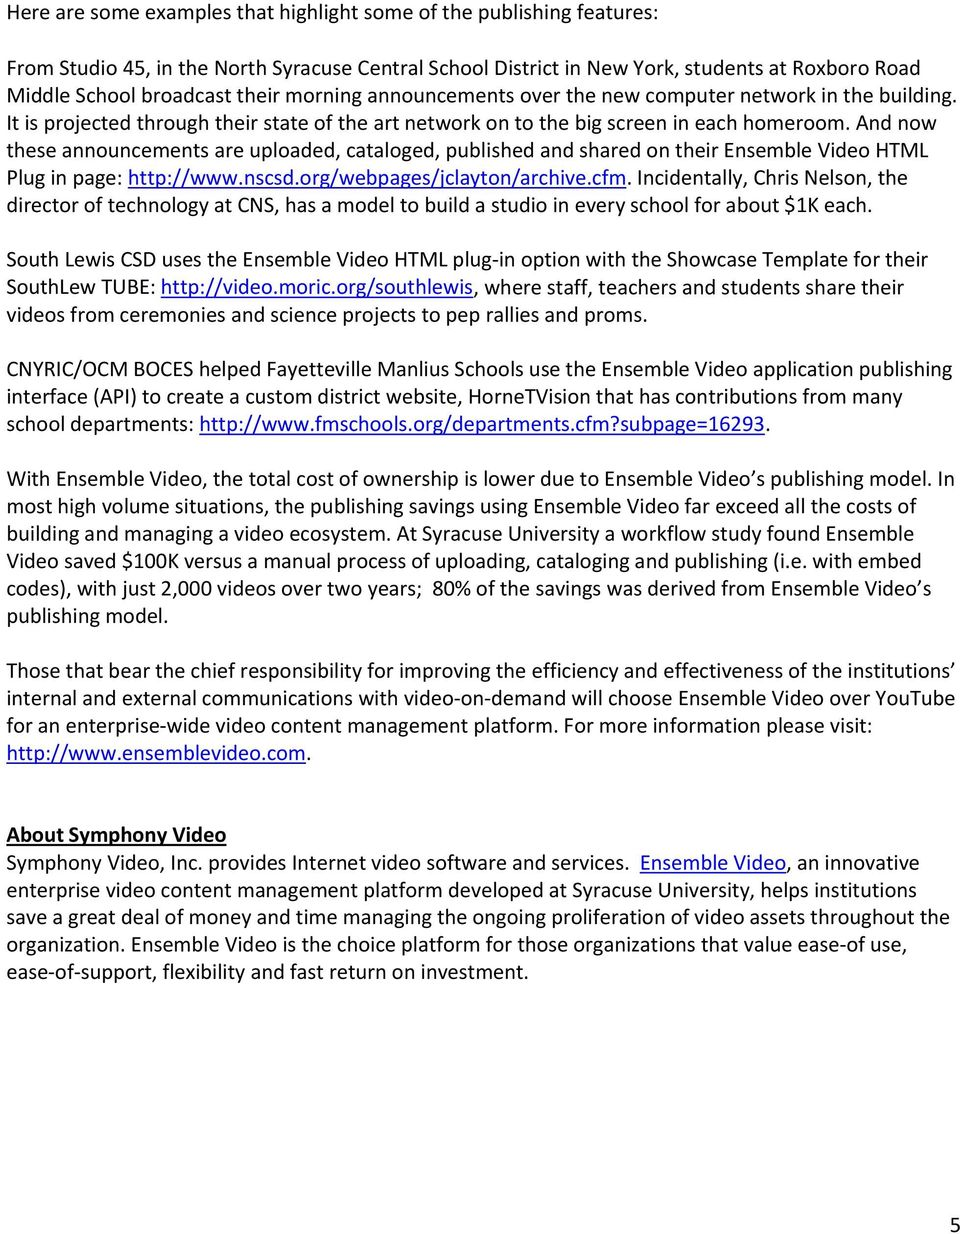 And now these announcements are uploaded, cataloged, published and shared on their Ensemble Video HTML Plug in page: http://www.nscsd.org/webpages/jclayton/archive.cfm.